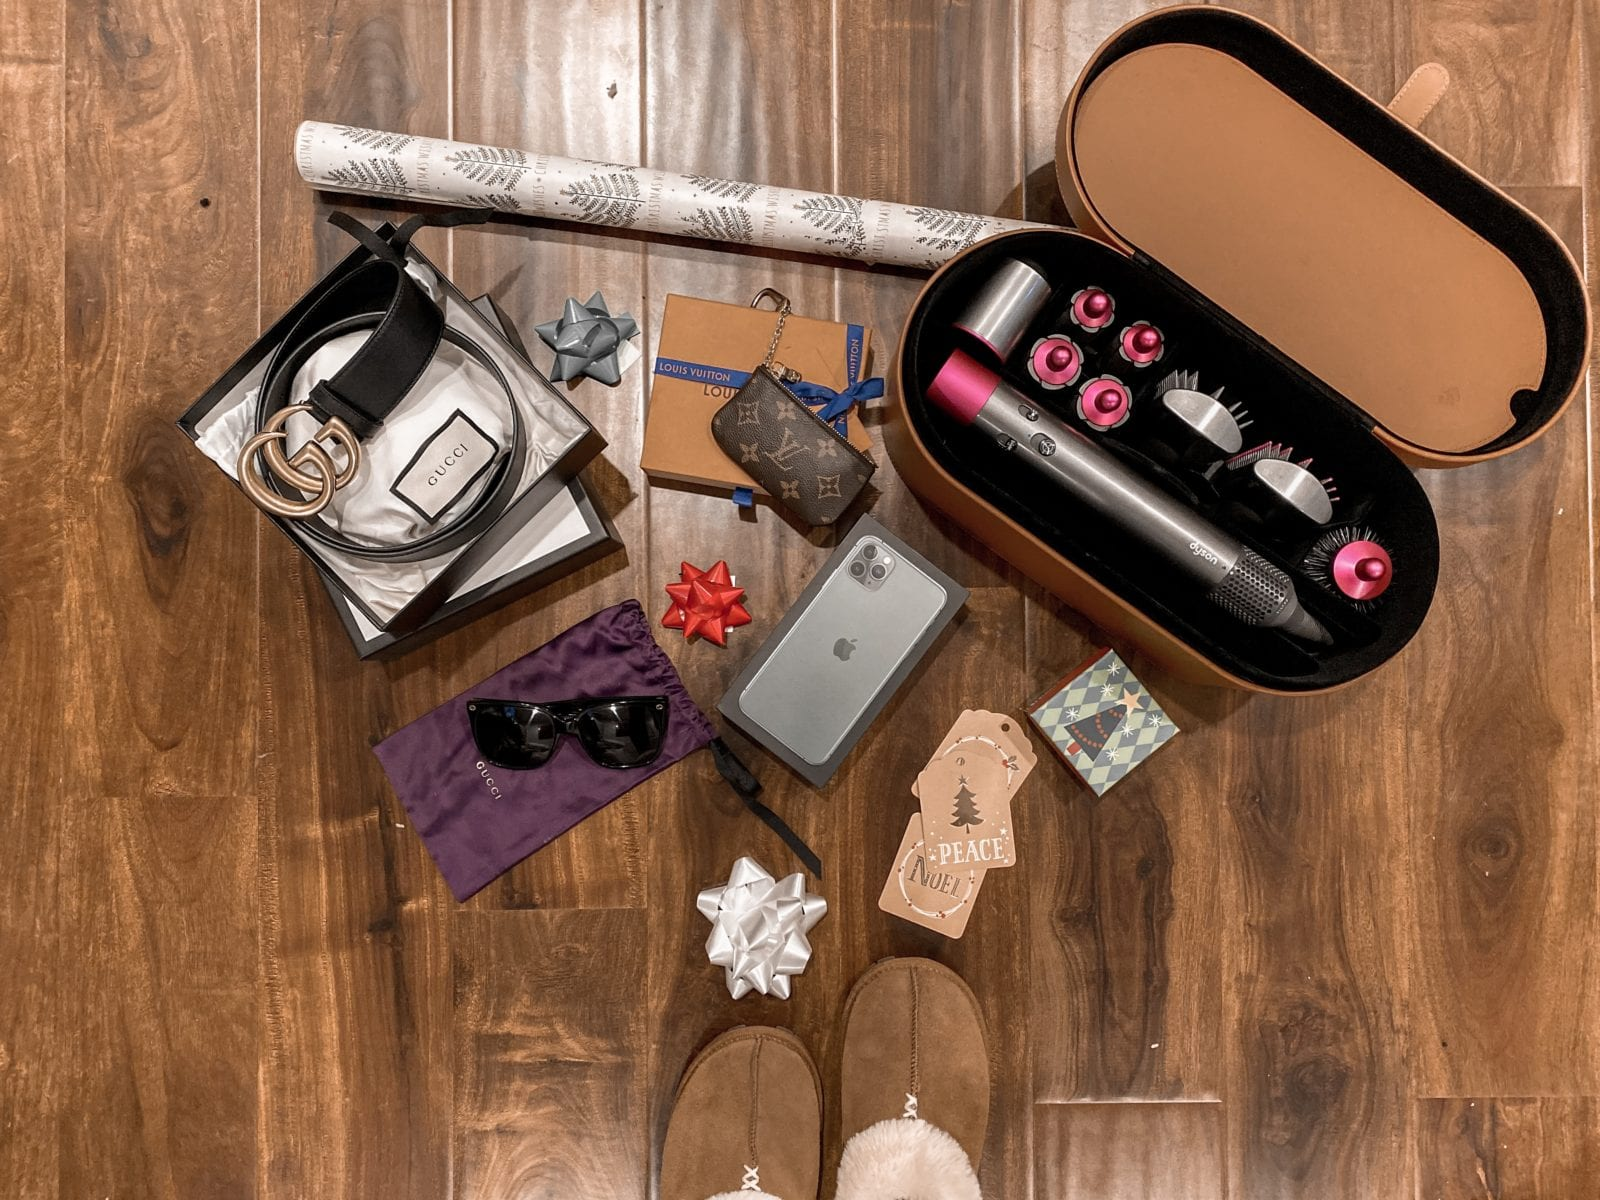 This is a flat lay, including slippers, Dyson dryer, Gucci belt, Gucci sunglasses and more splurge worthy items.